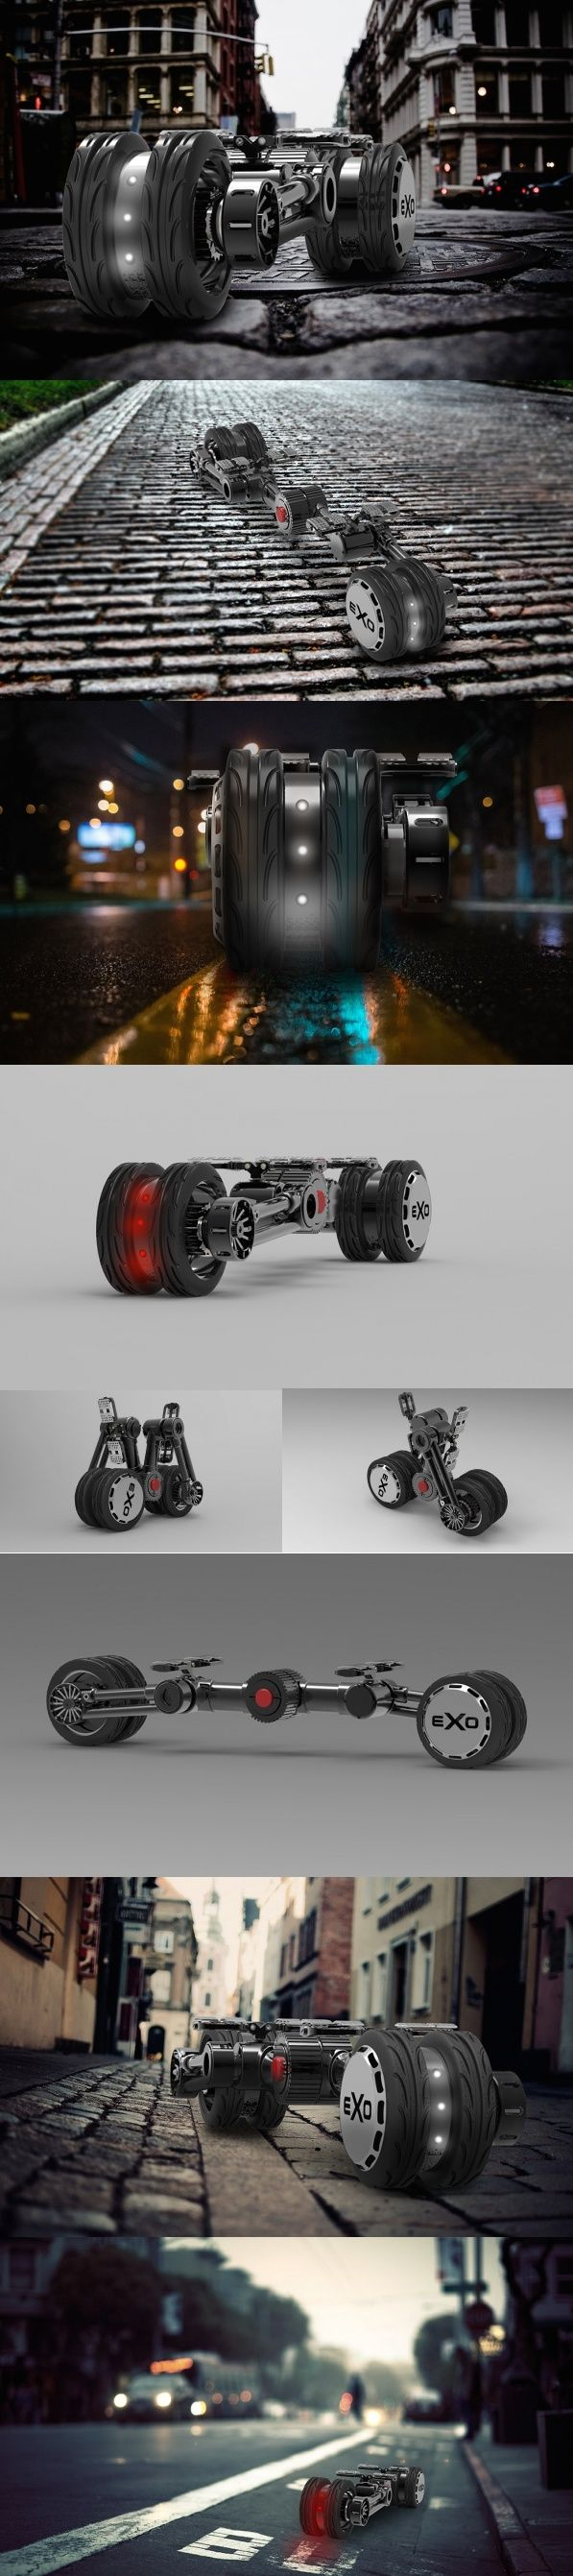 "EXO (an abbreviation of ""exoskeleton"") denotes the aesthetic behind this E-Boards skeletal construction. Taking the interpretation of a personal electric skateboard and turning on its head, the board was designed with the intention of being the worlds first compactable electric skateboard that not only looks entirely unique, but also functions like no other. Transportation Bike Yankodesign #Technology #Swagnologies"